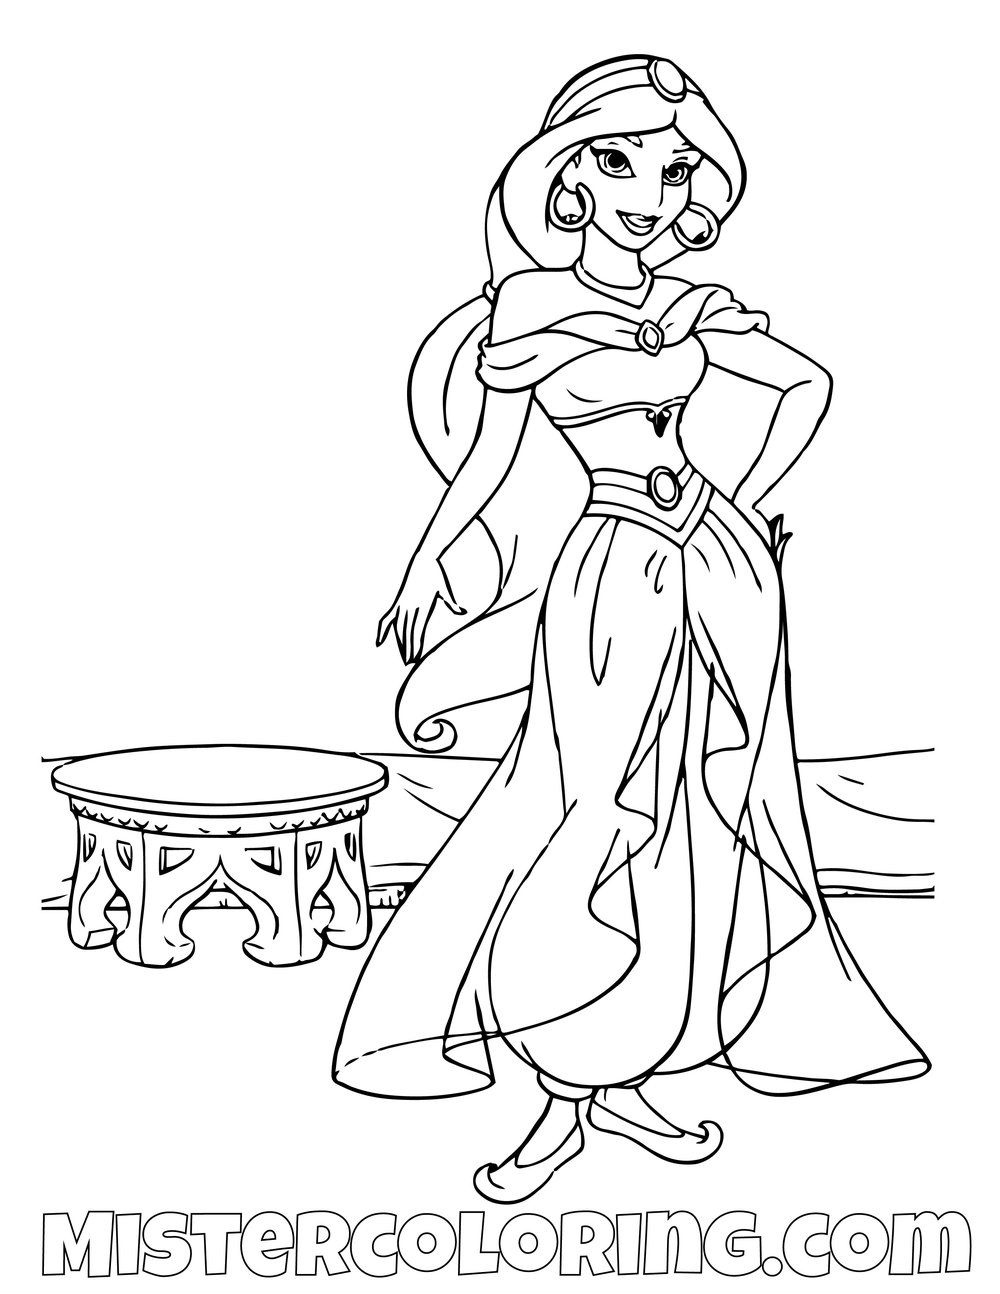 Printable Jasmine Coloring Pages For Kids Cool2bkids Princess Coloring Pages Disney Coloring Pages Disney Princess Colors